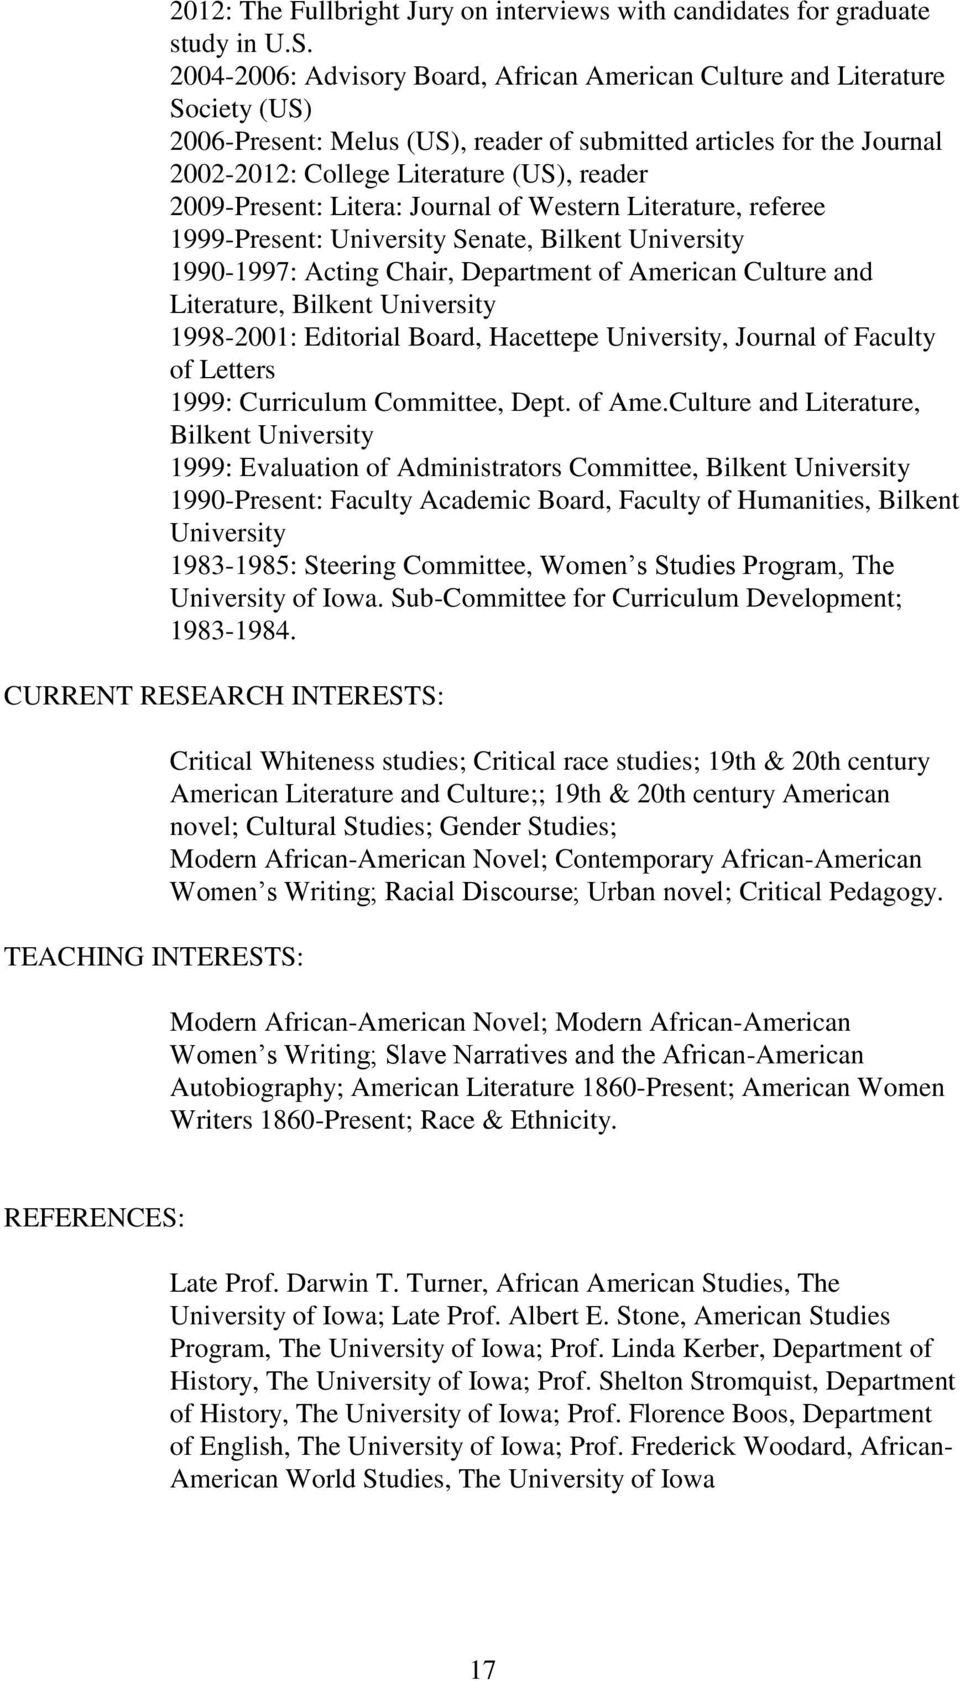 2009-Present: Litera: Journal of Western Literature, referee 1999-Present: University Senate, Bilkent University 1990-1997: Acting Chair, Department of American Culture and Literature, Bilkent